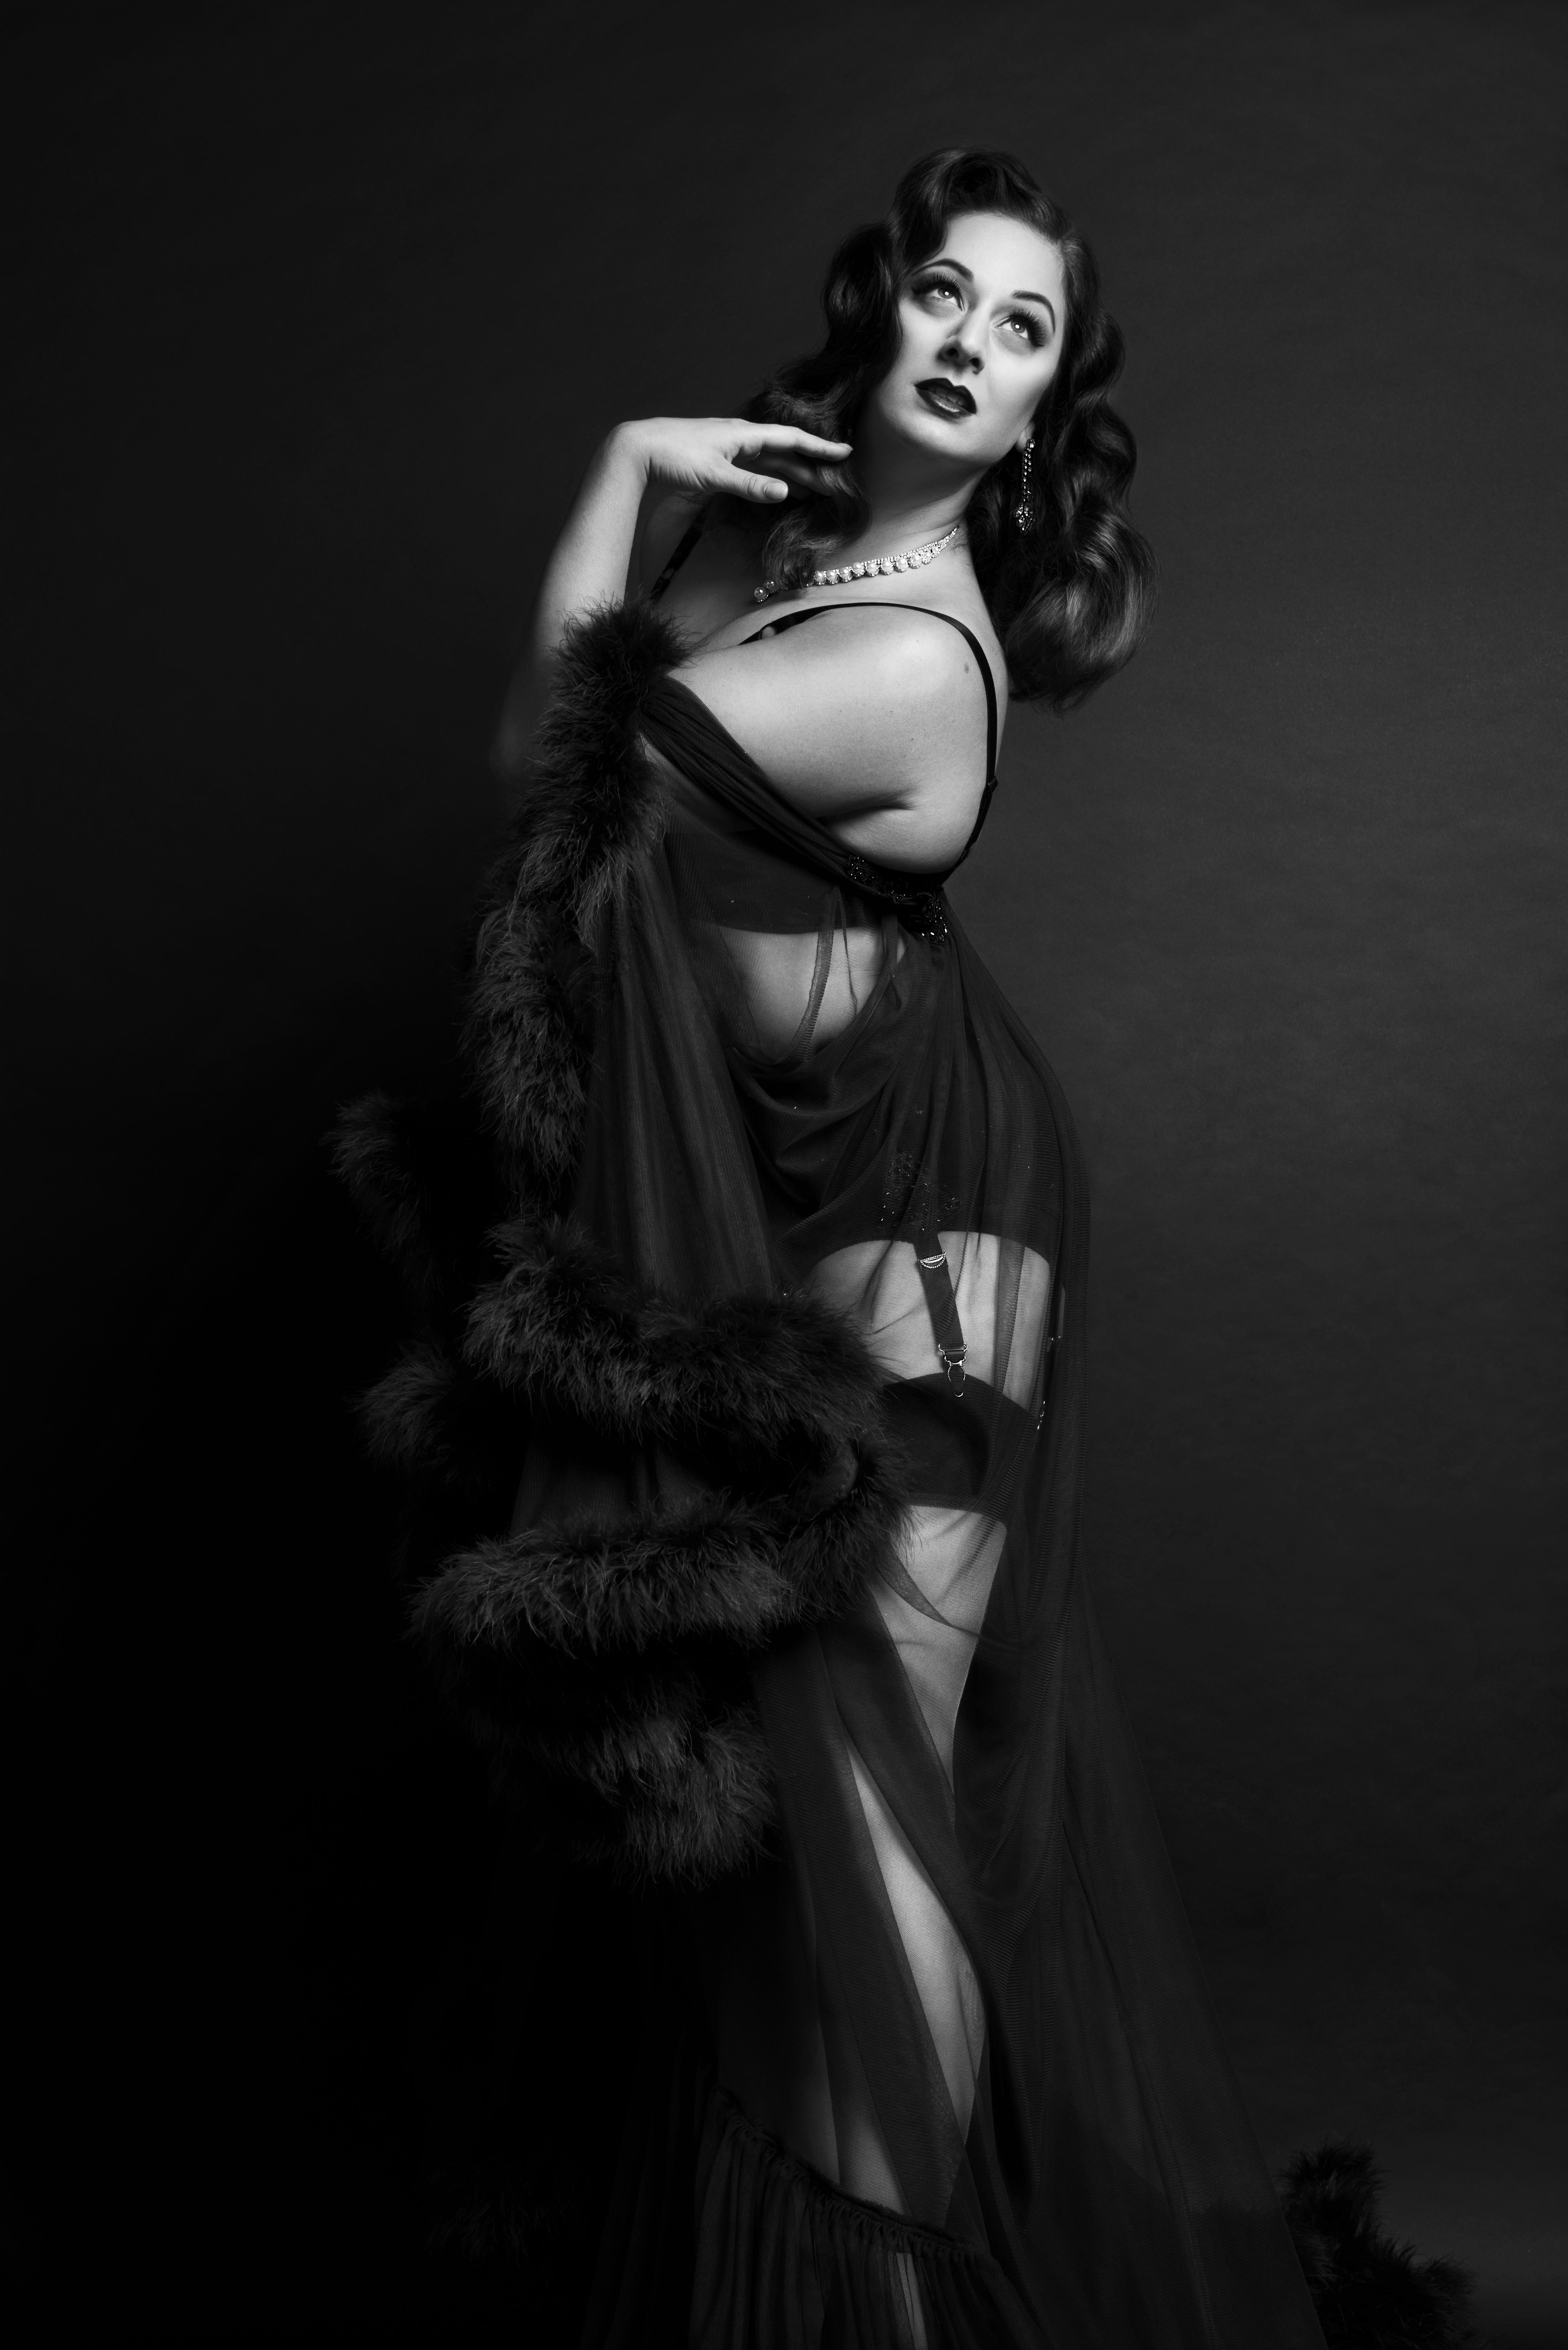 Seven Things You Might Not Know About The Art Of Burlesque, As Told By The London's Burlesque Queen – Tempest Rose